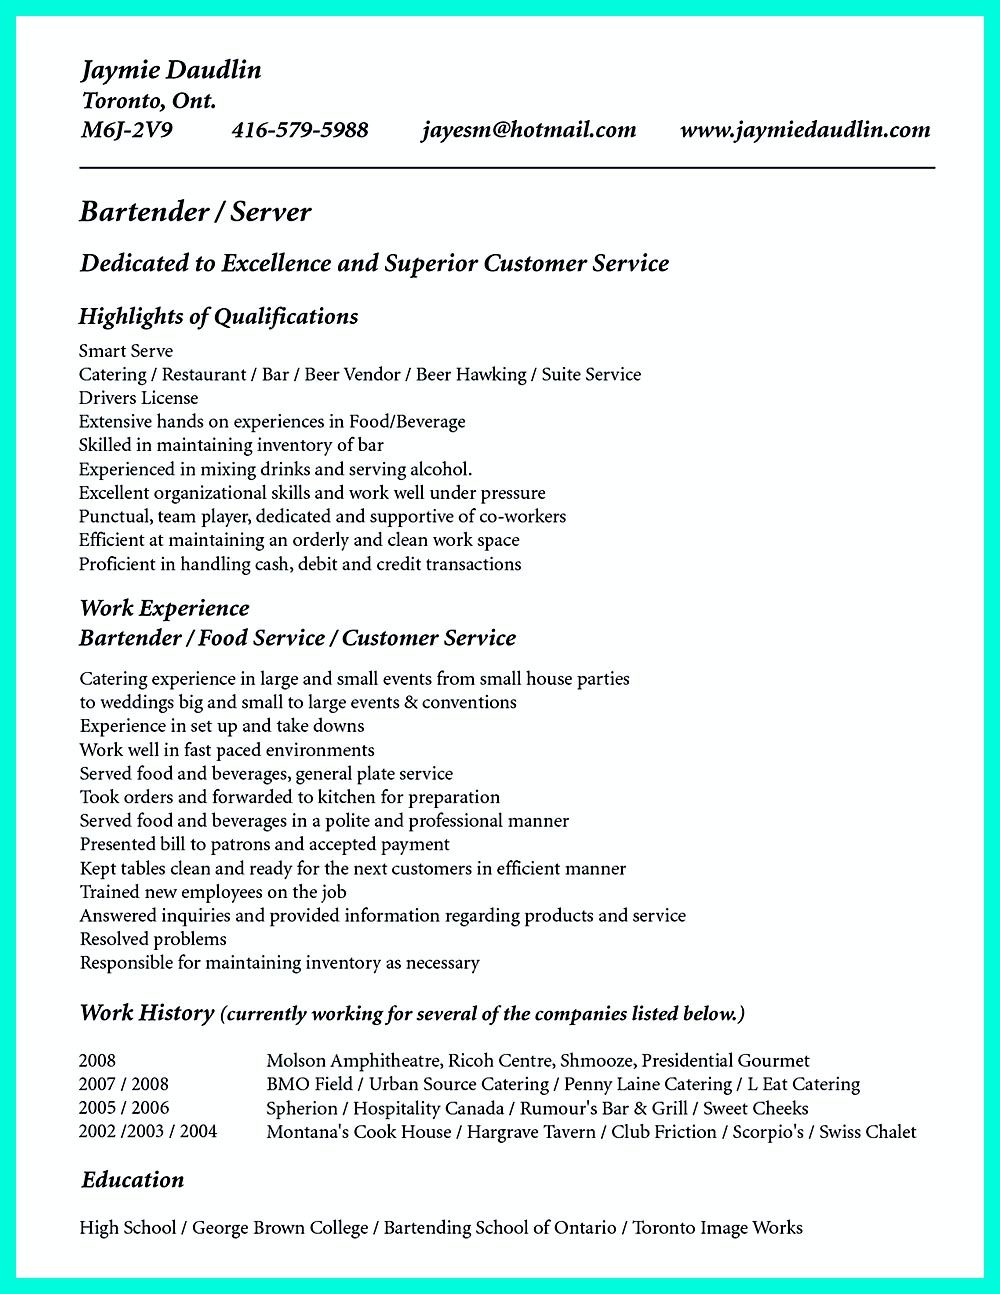 What To Put Under Skills On Resume Cocktail Server Resume Skills Are Needed So Muchthe Company Or